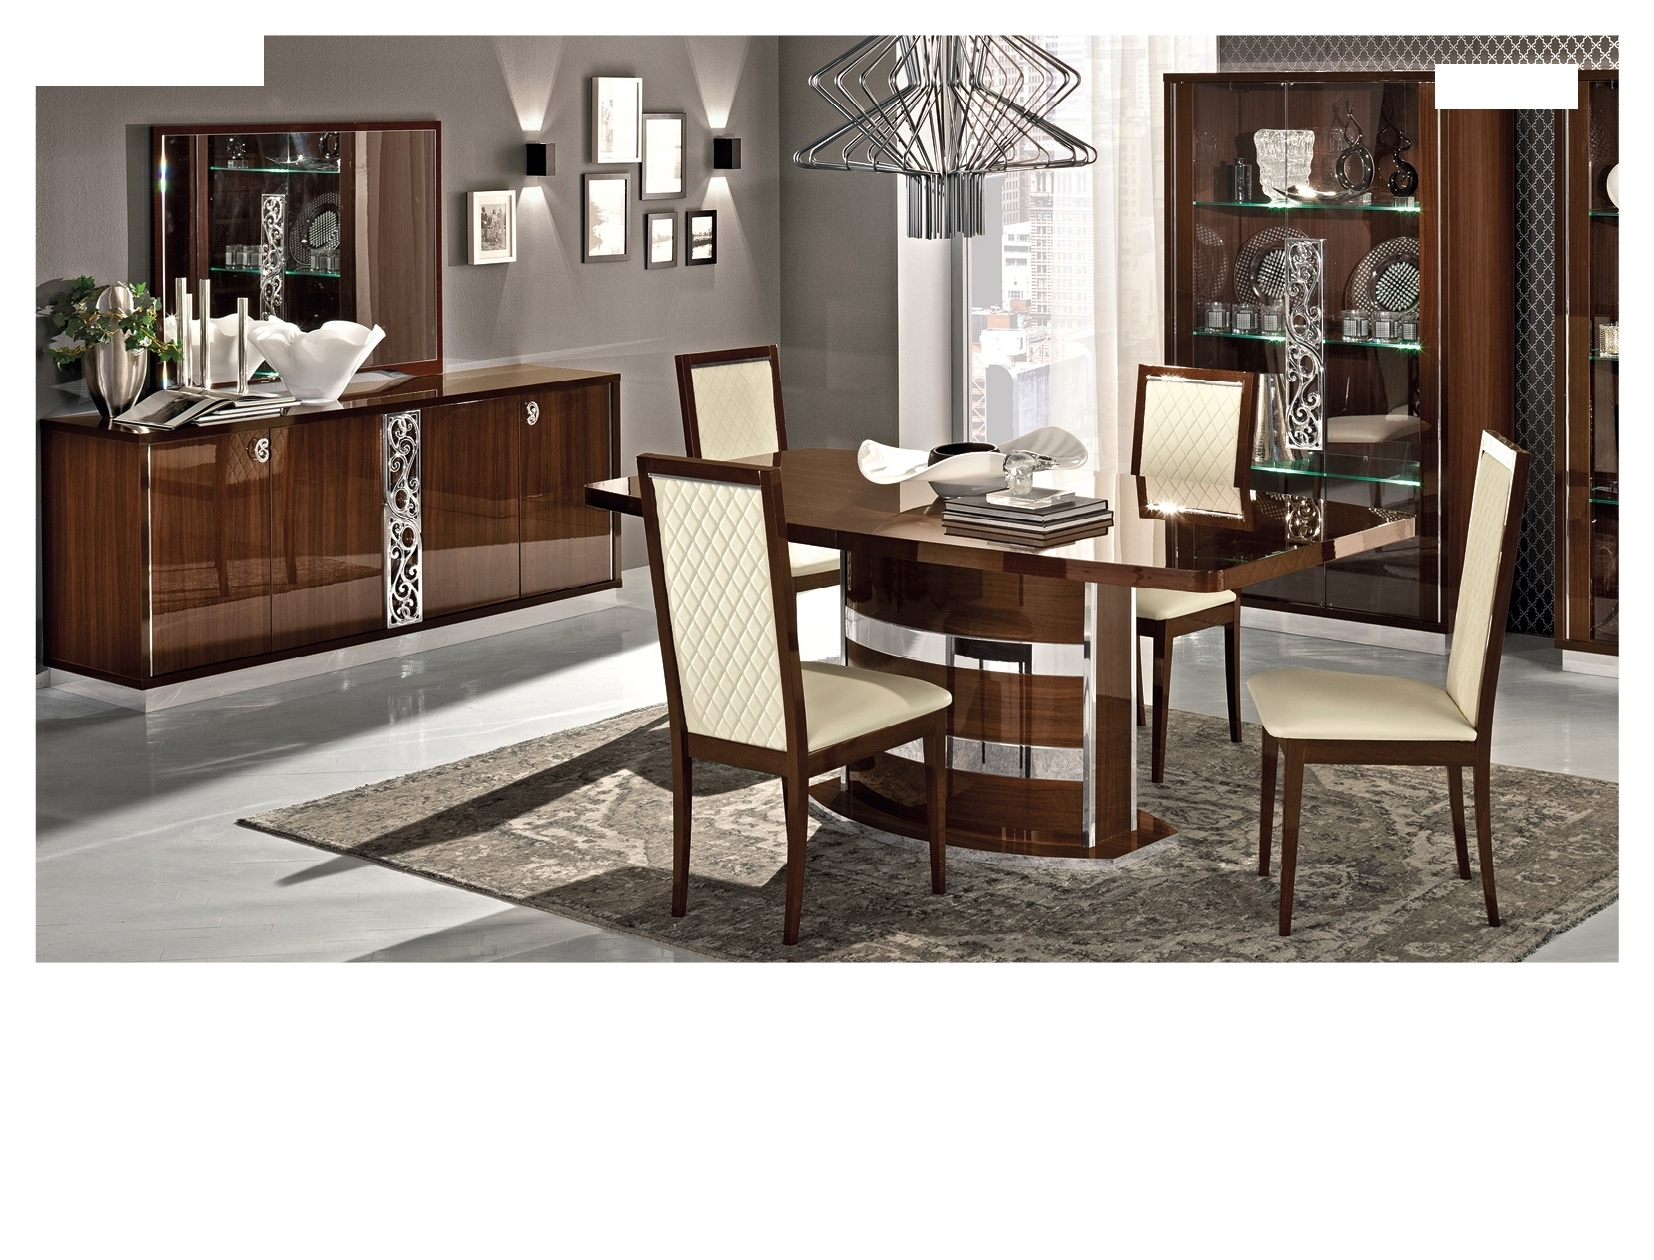 Roma Dining Walnut, Italy, Modern Formal Dining Sets, Dining Room With Regard To Current Roma Dining Tables And Chairs Sets (View 21 of 25)